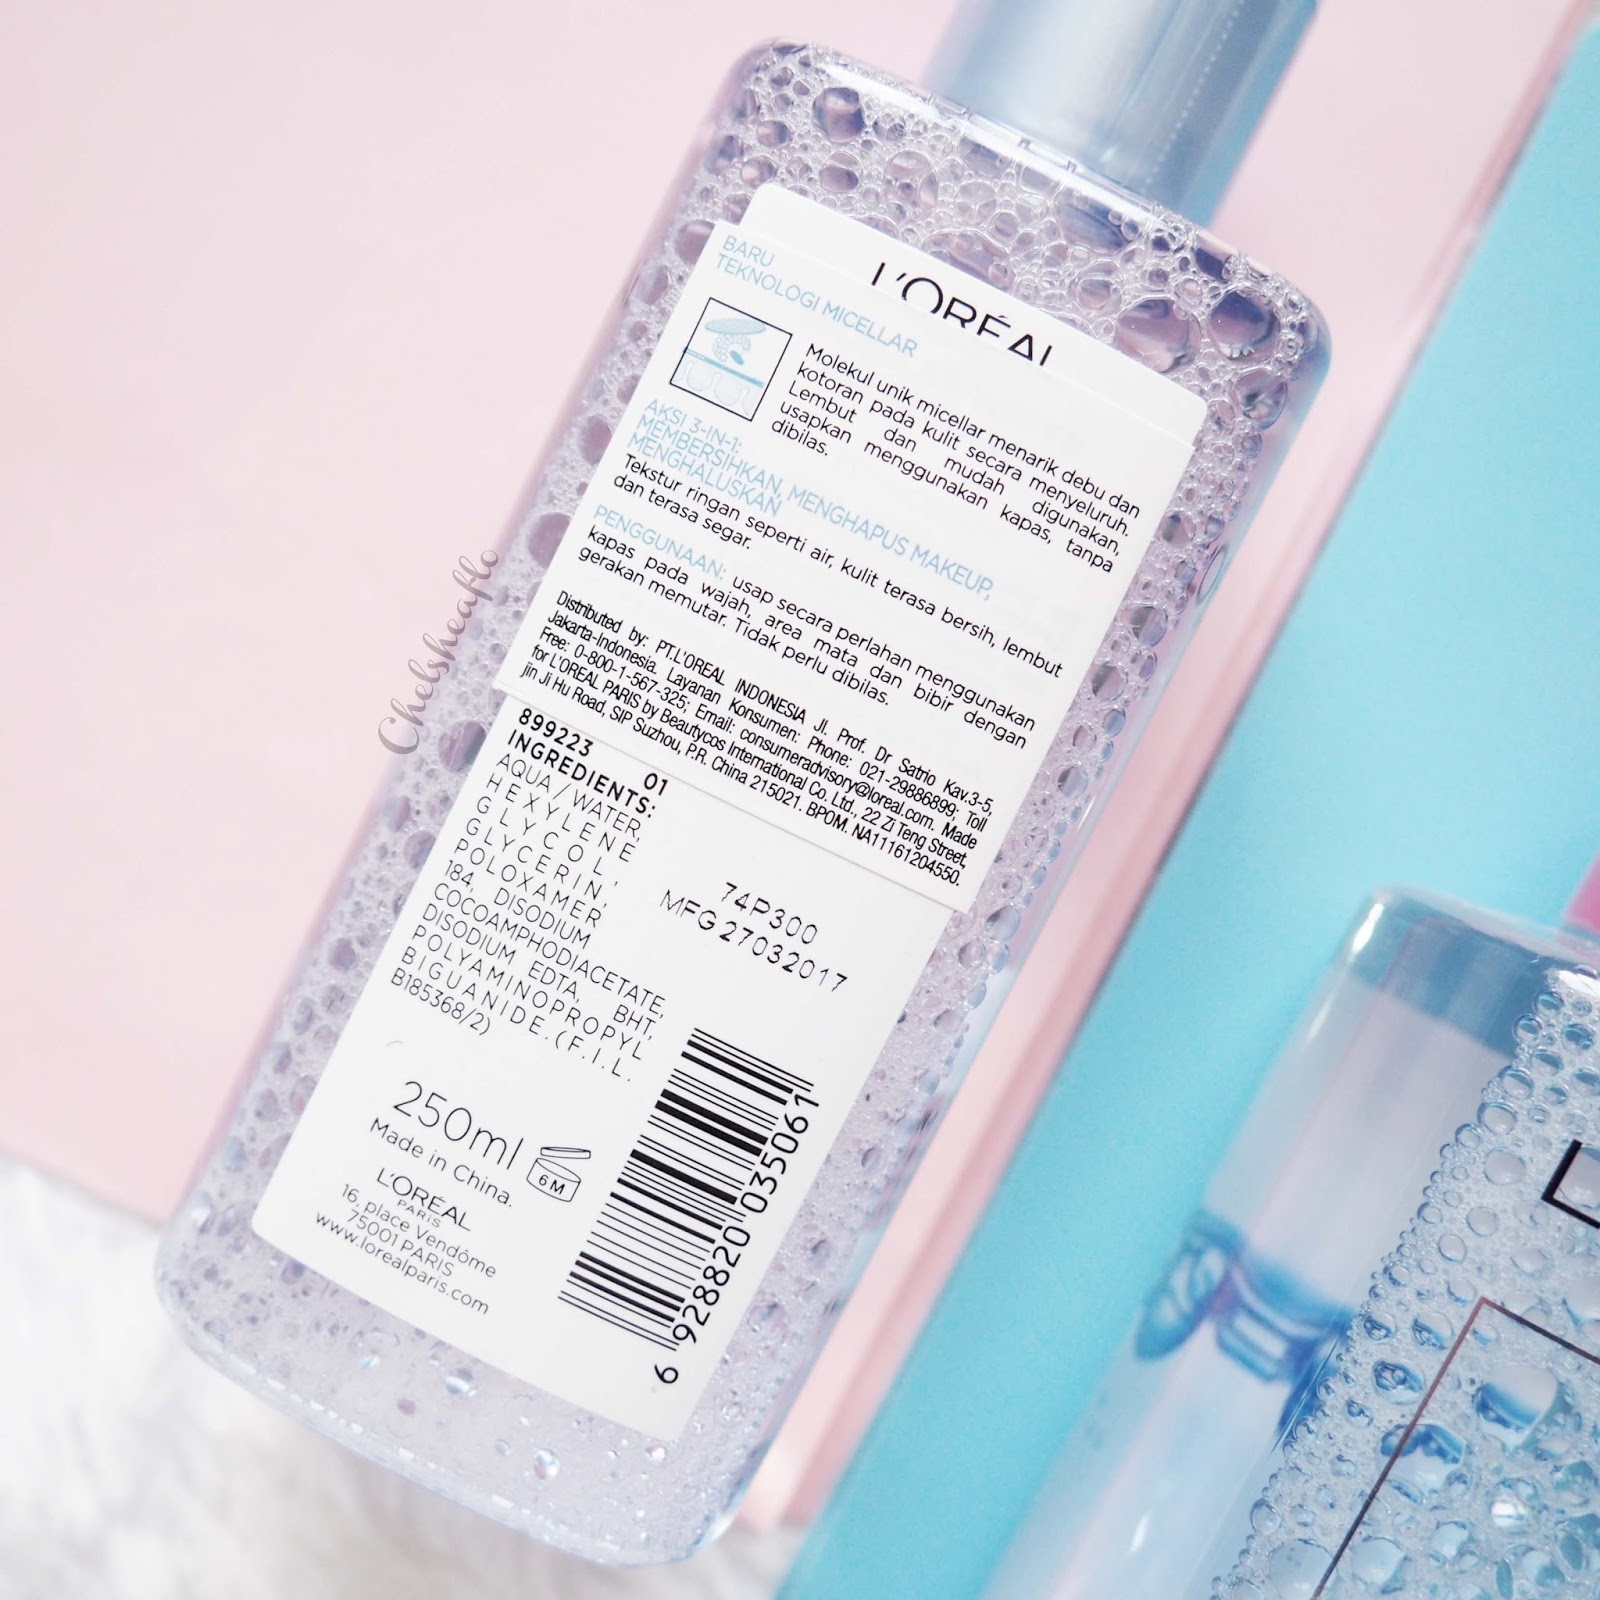 Review Loreal Micellar Water Cosmetics Beautynesia Blog L Oreal Makeup 250ml Blue Fresh Mountain To Refresh Skin For Normal Oily